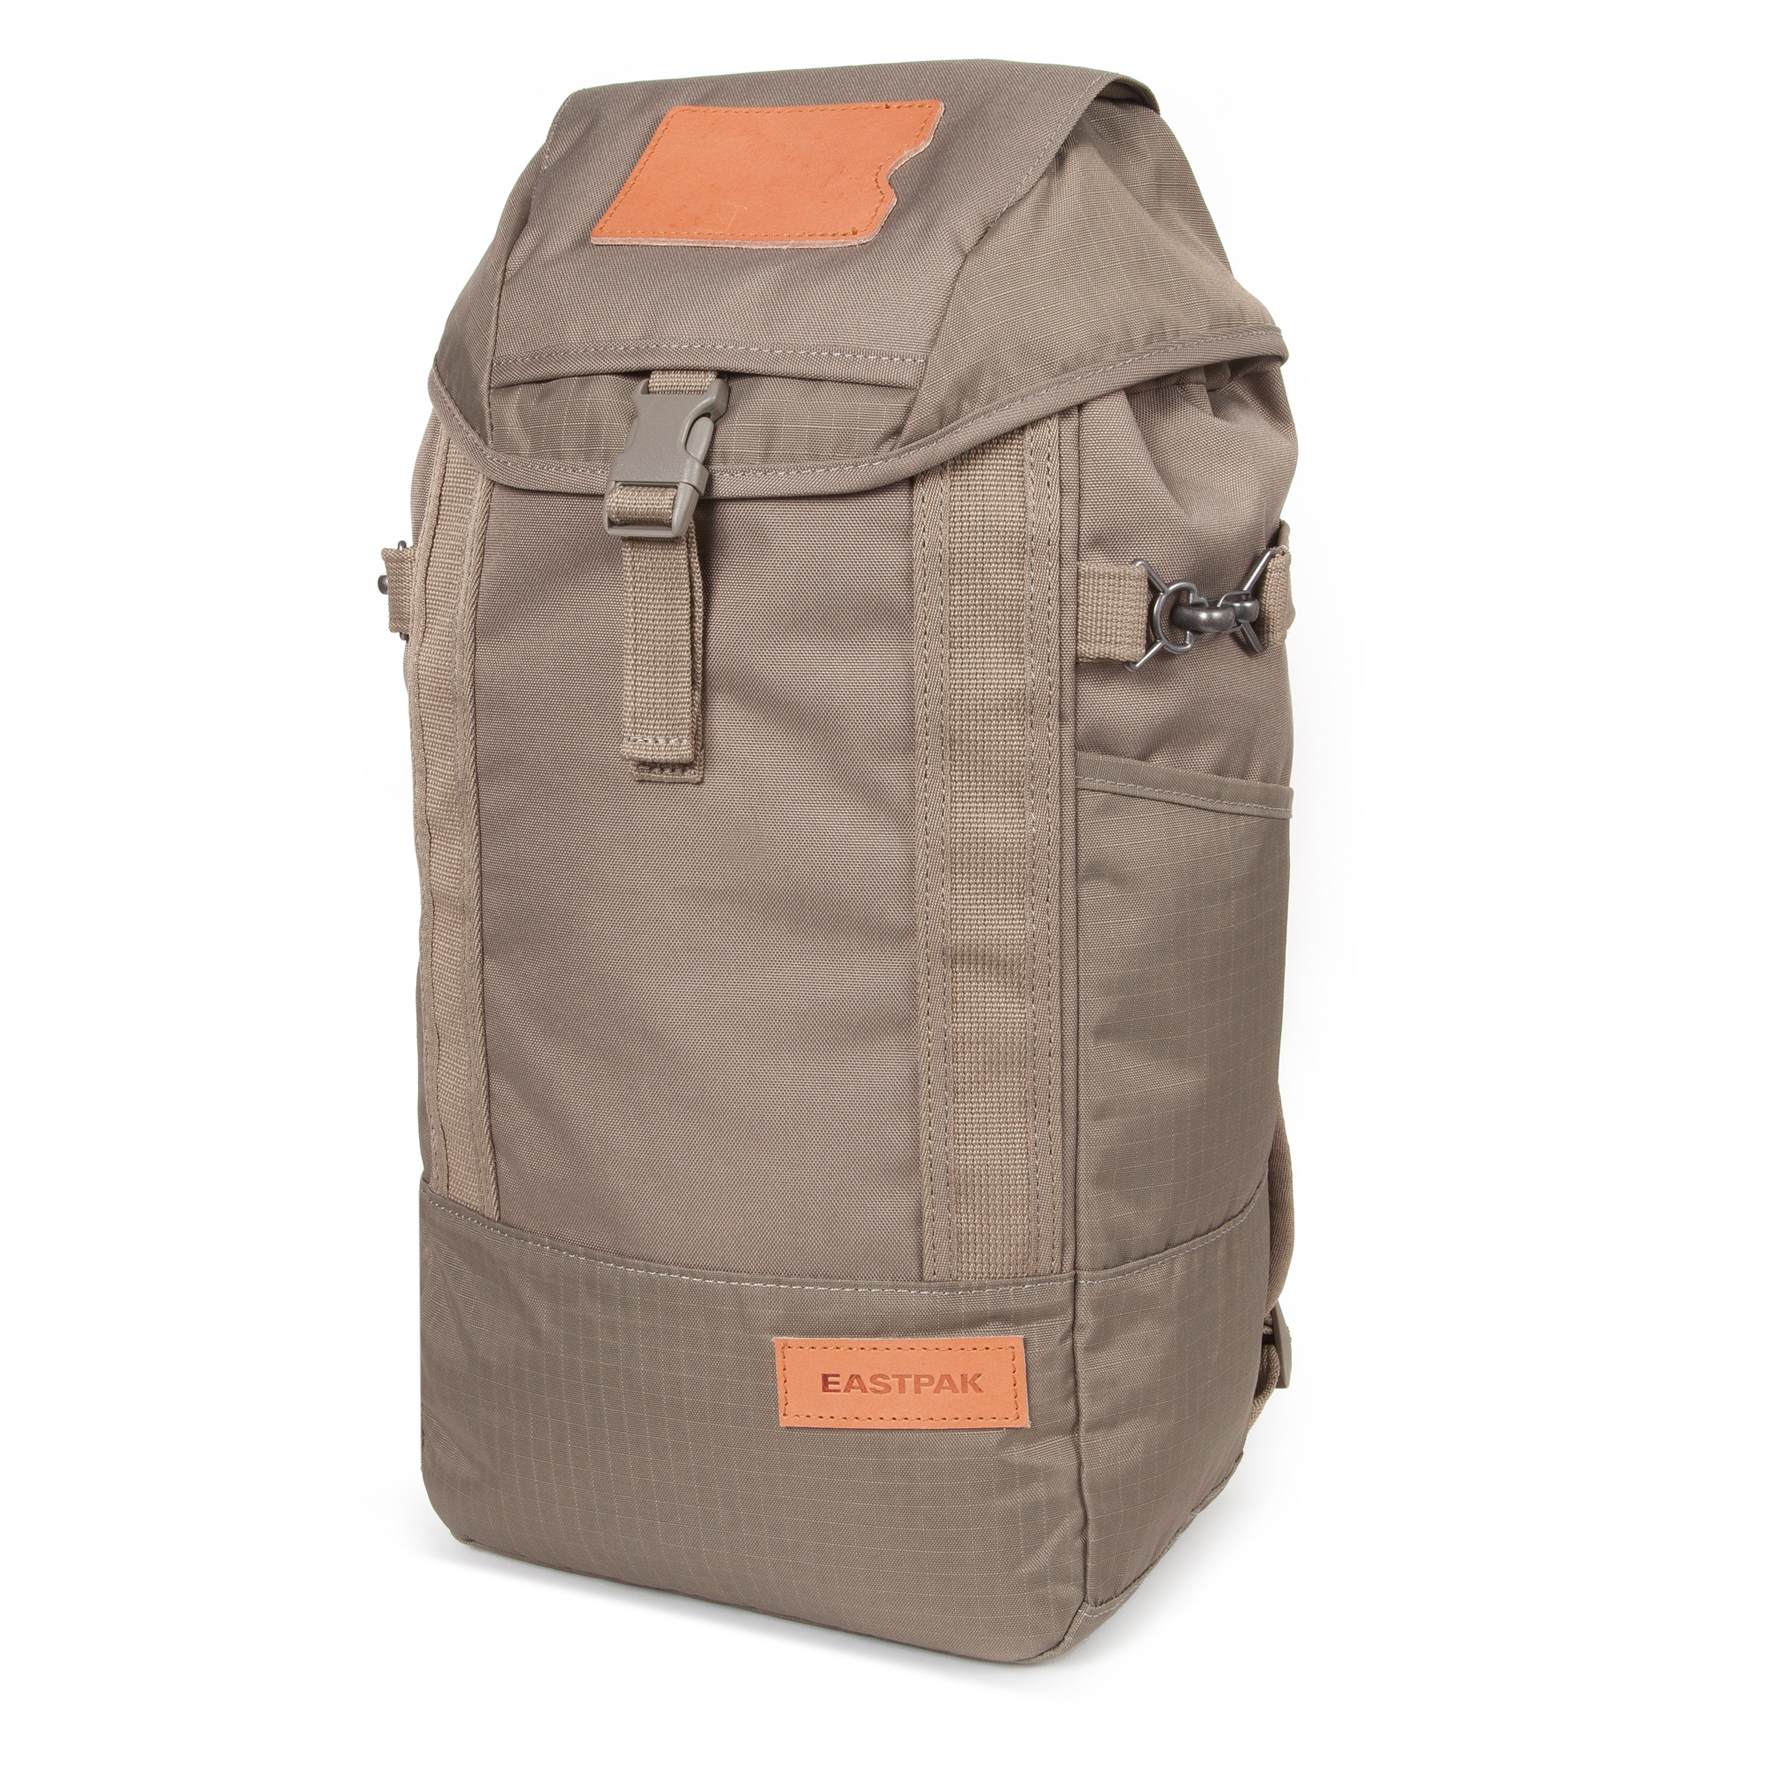 eastpak merge collection (1)